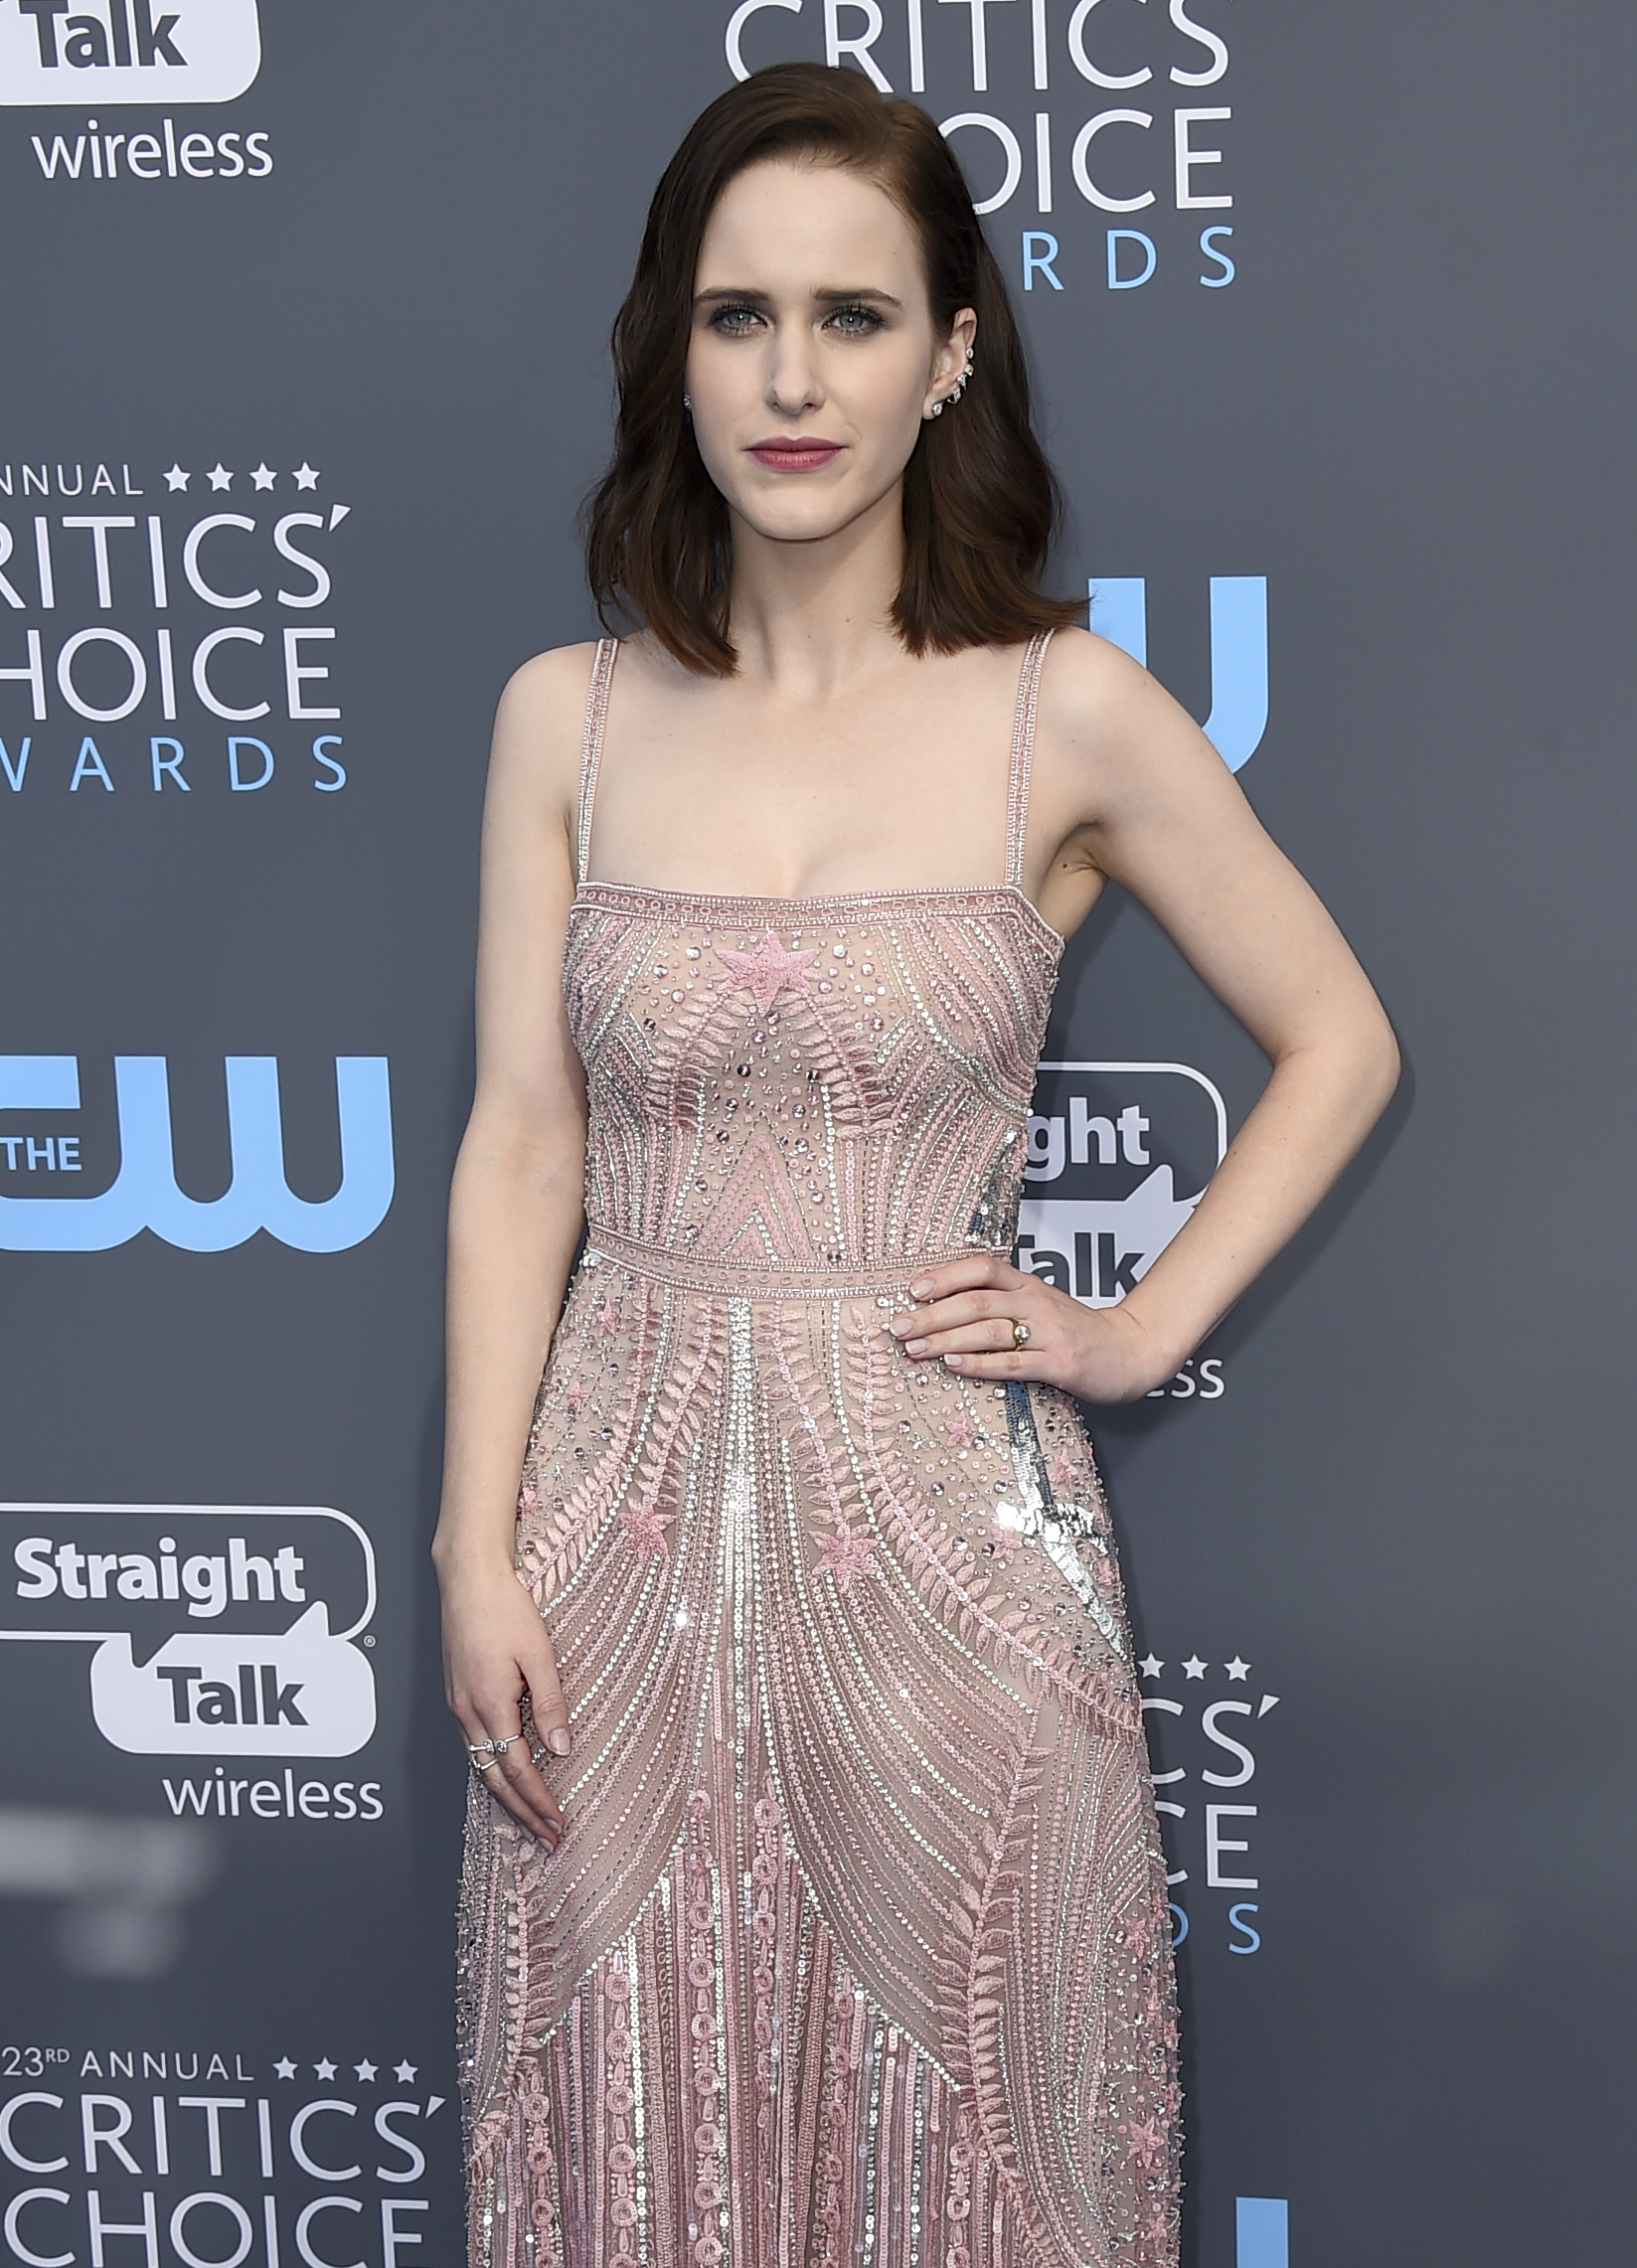 <div class='meta'><div class='origin-logo' data-origin='AP'></div><span class='caption-text' data-credit='Jordan Strauss/Invision/AP'>Rachel Brosnahan arrives at the 23rd annual Critics' Choice Awards at the Barker Hangar on Thursday, Jan. 11, 2018, in Santa Monica, Calif.</span></div>